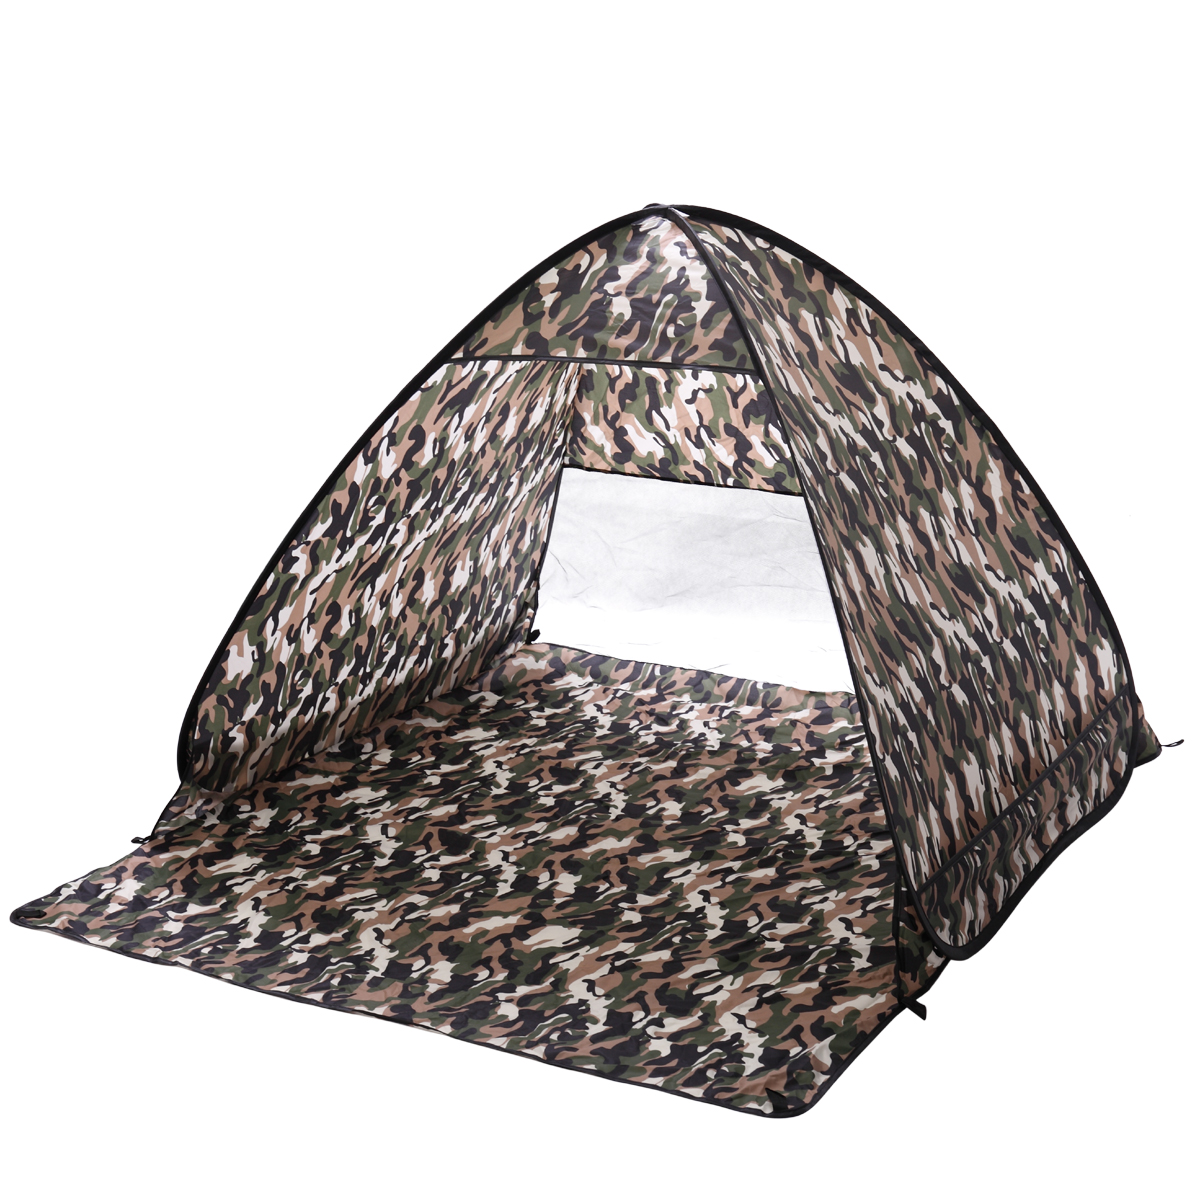 Lazymoon Small Camouflage�Pop Up Portable Beach Canopy Sun Shade Shelter Outdoor Camping Fishing Tent by Lazymoon